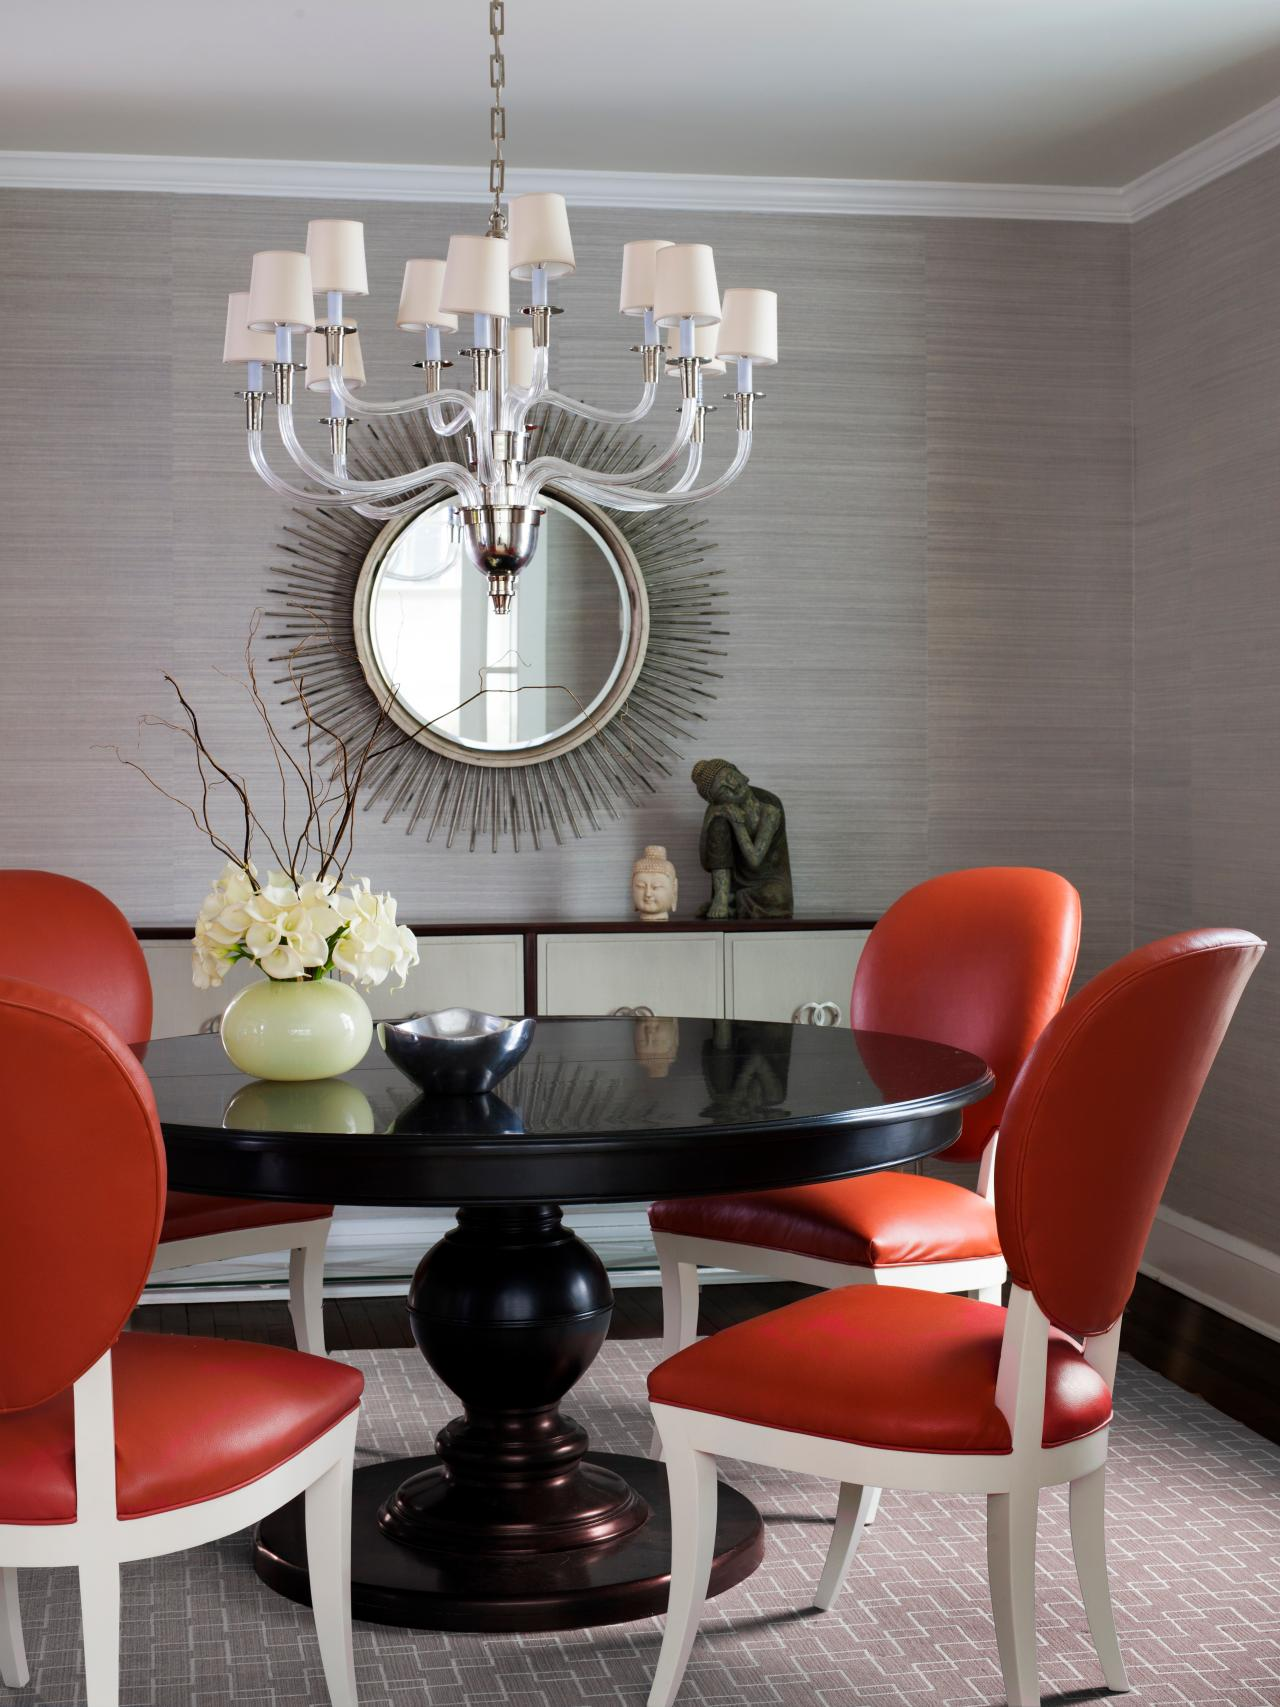 modern dining room wall decor. Funky Dining Room Design 15 Ways to Dress Up Your Walls  HGTV s Decorating